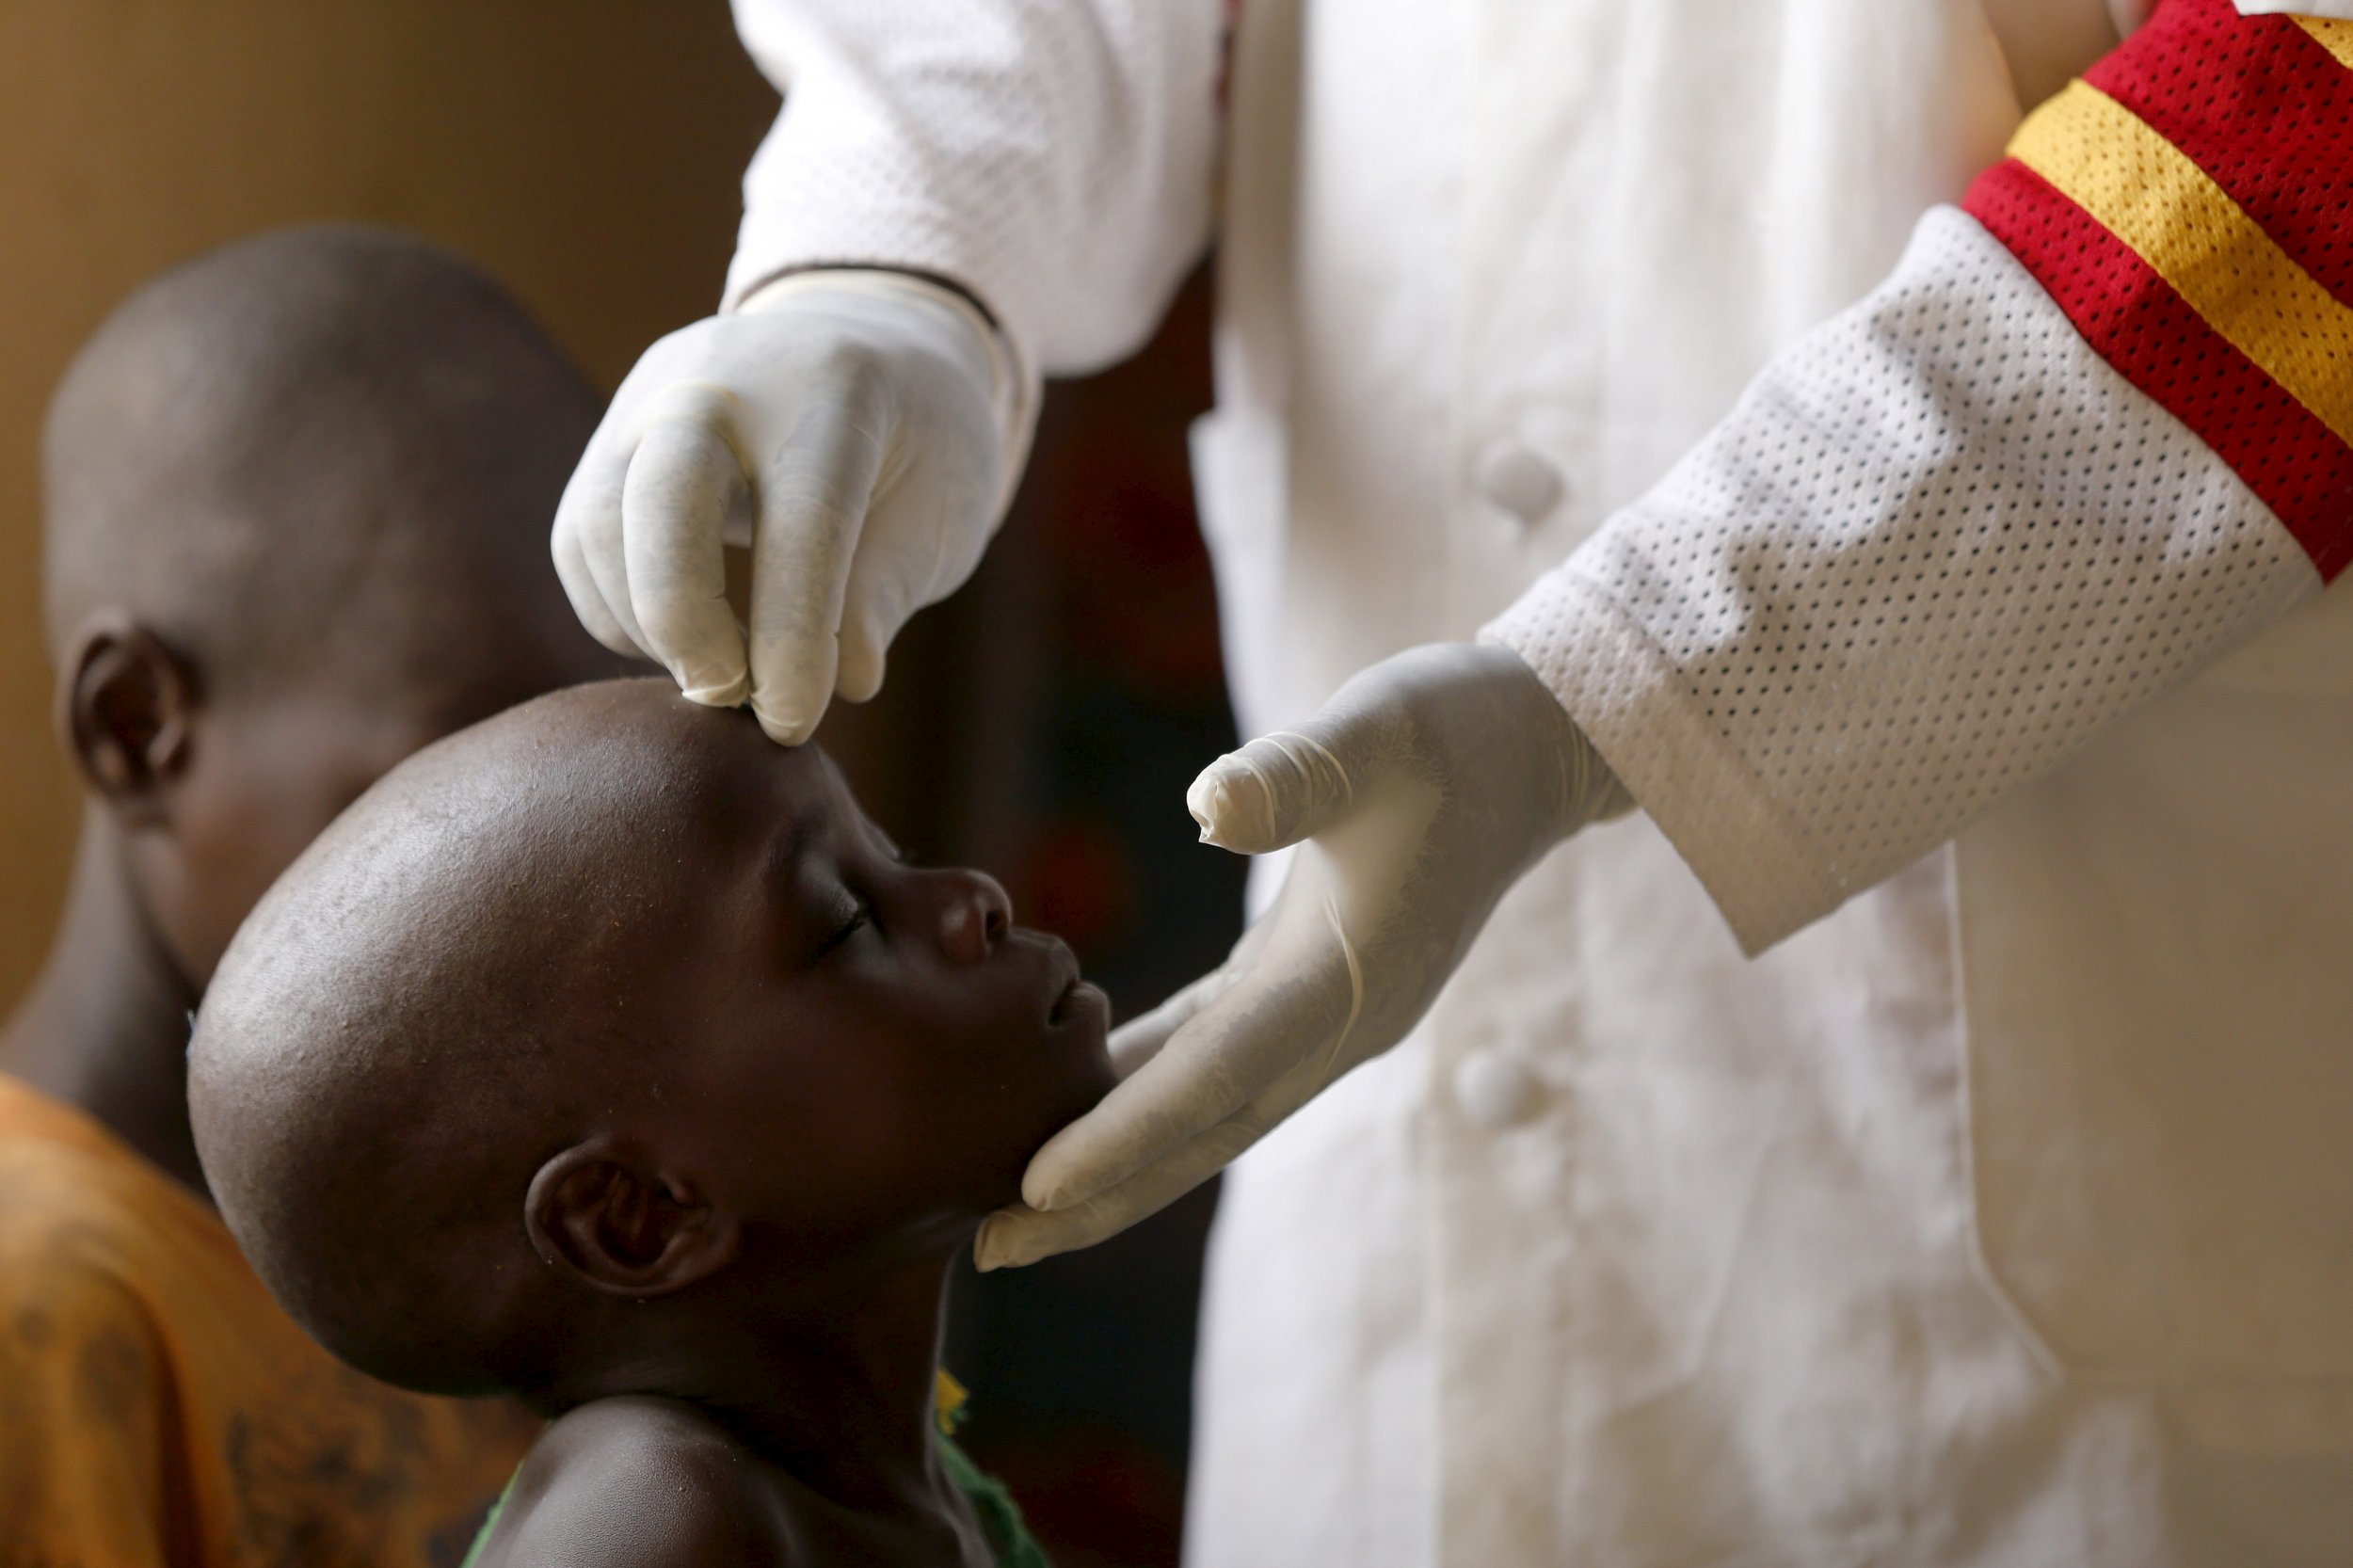 A child rescued from Boko Haram is given a health check in Yola, Nigeria.